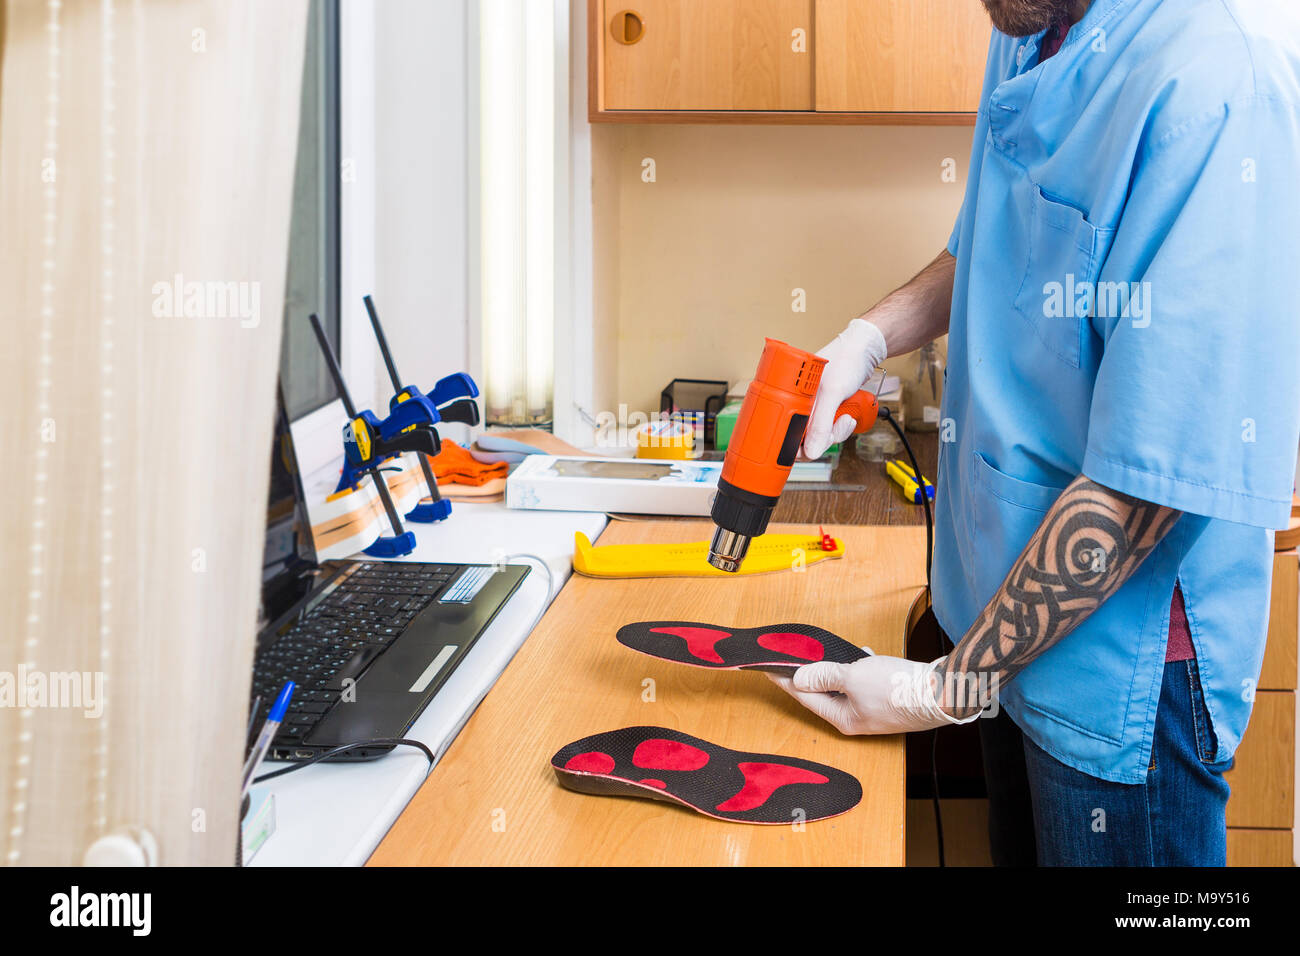 closeup Hands of young man with tattoo in workshop dressed in blue uniform make individual orthopedic insoles. The instrument uses hairdryer to heat and deform. Theme of small business and medicine - Stock Image